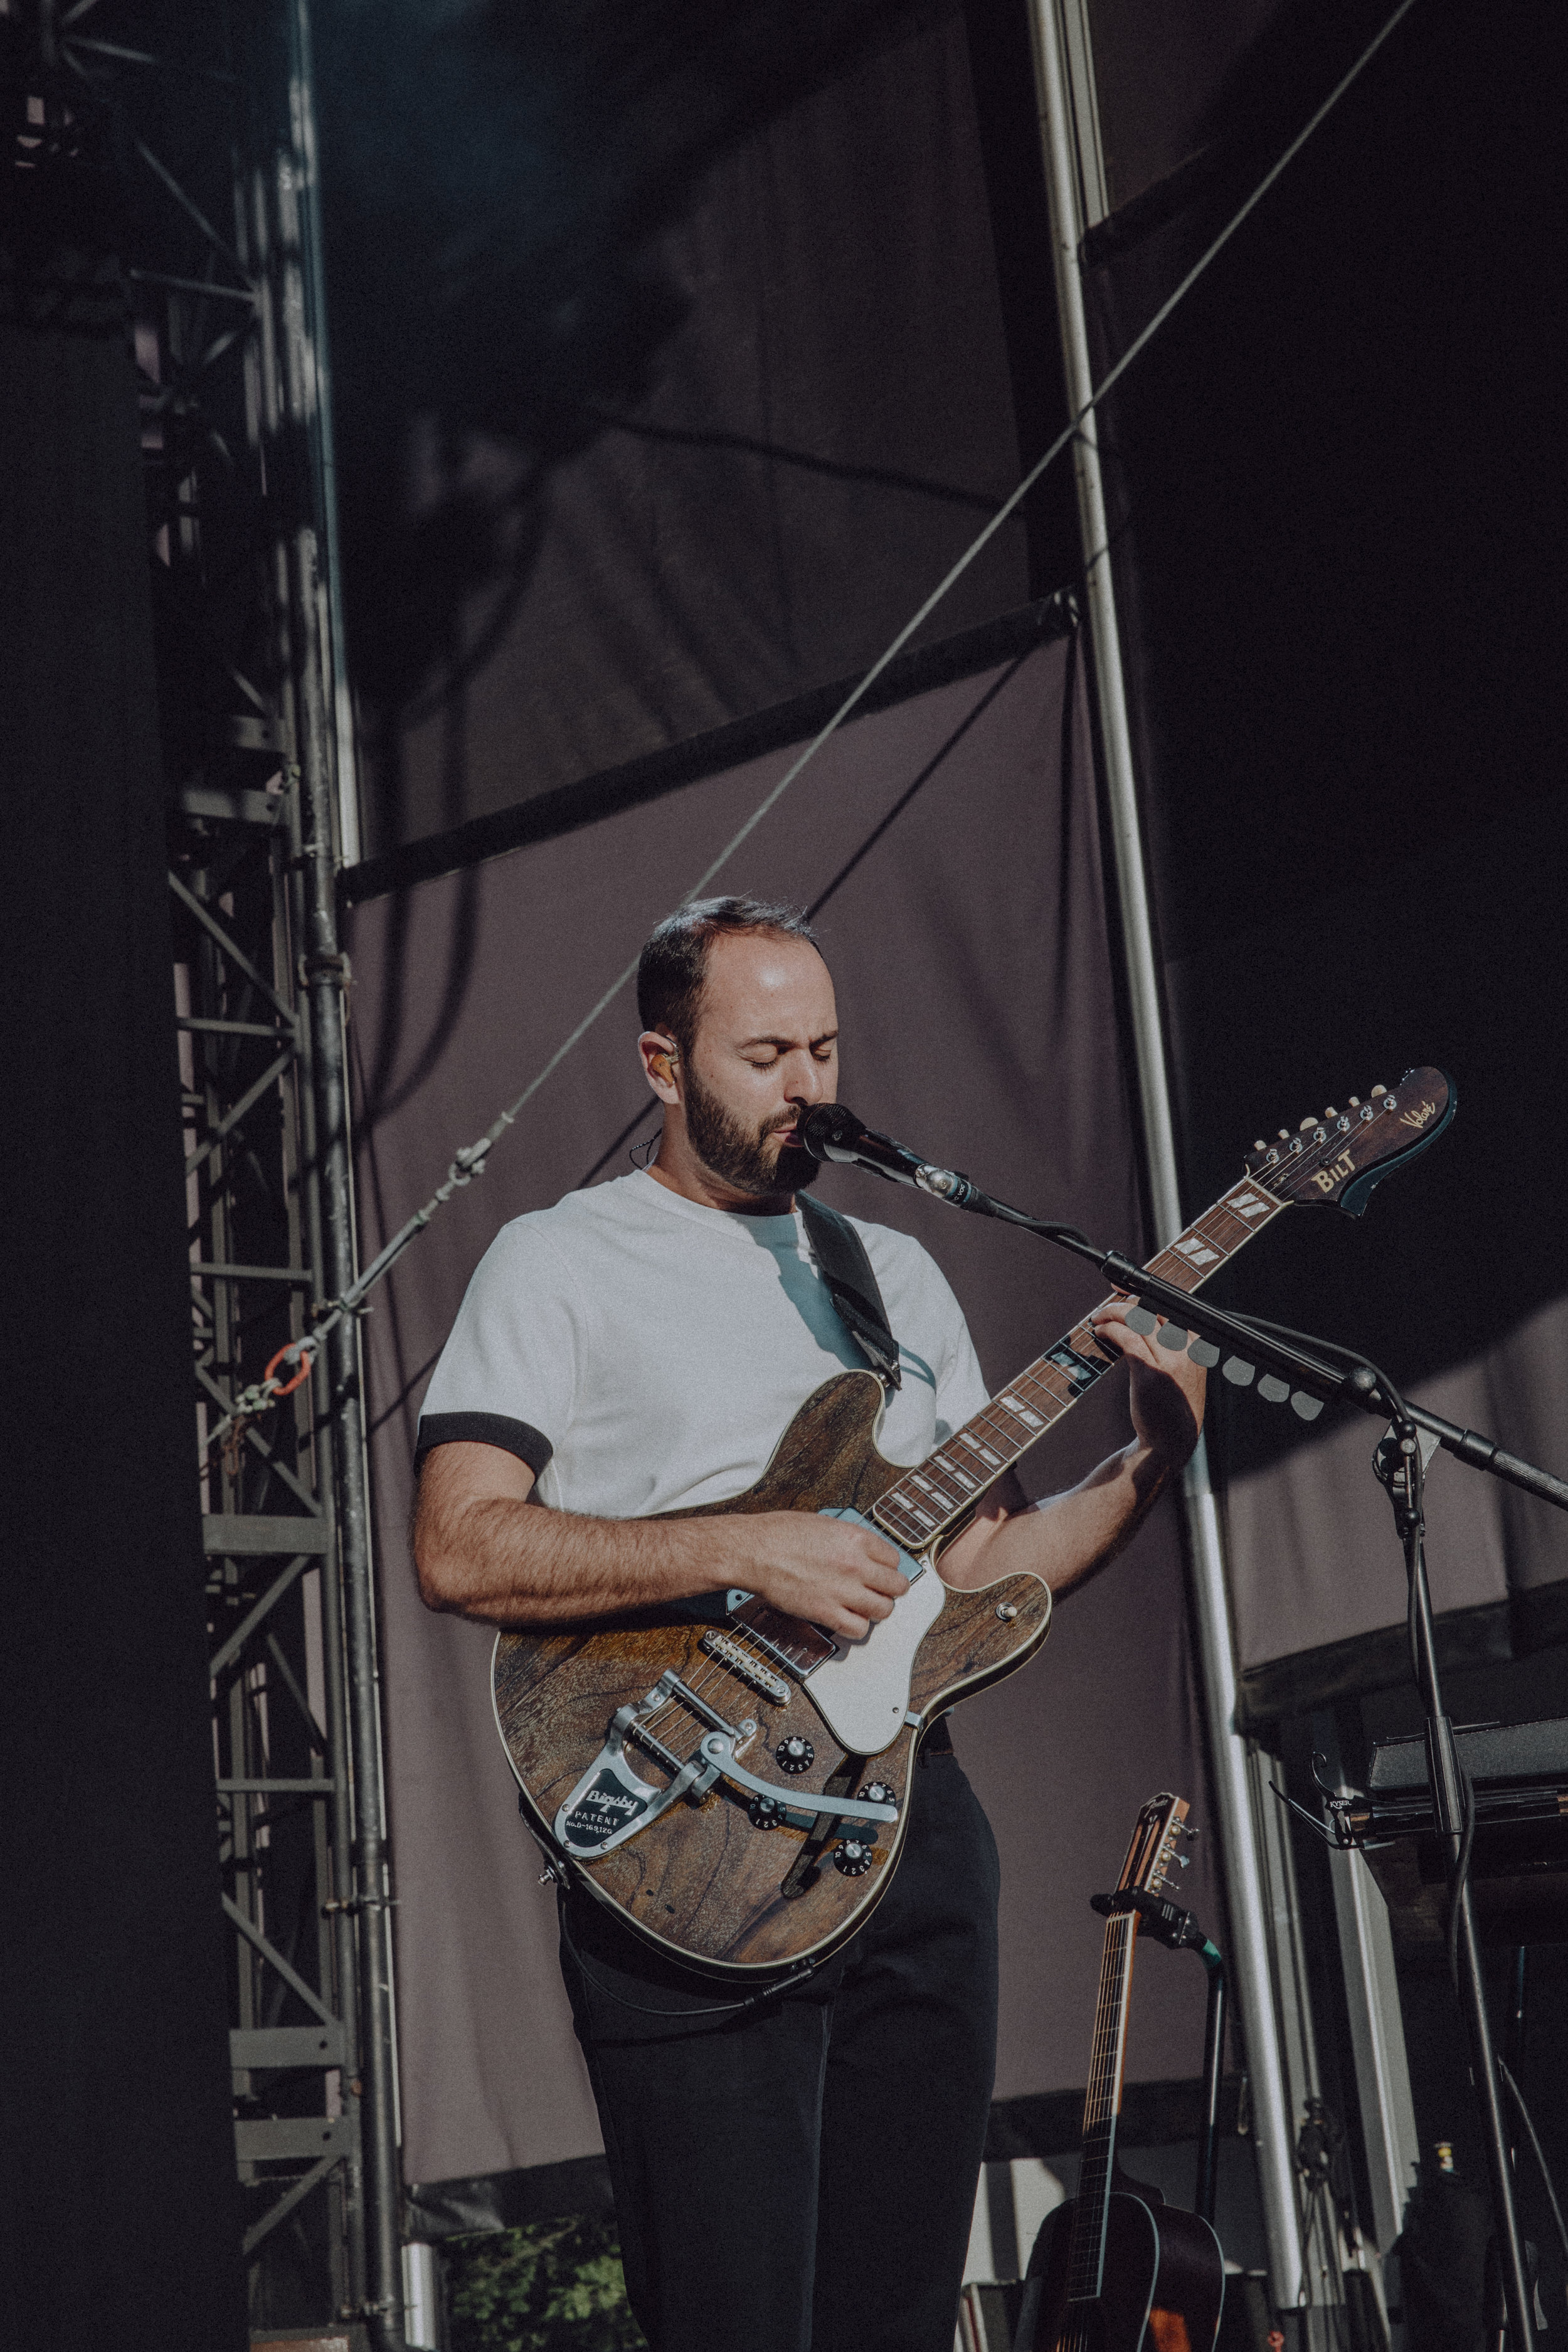 WILLIAMS_YOUNGTHEGIANT-7.jpg